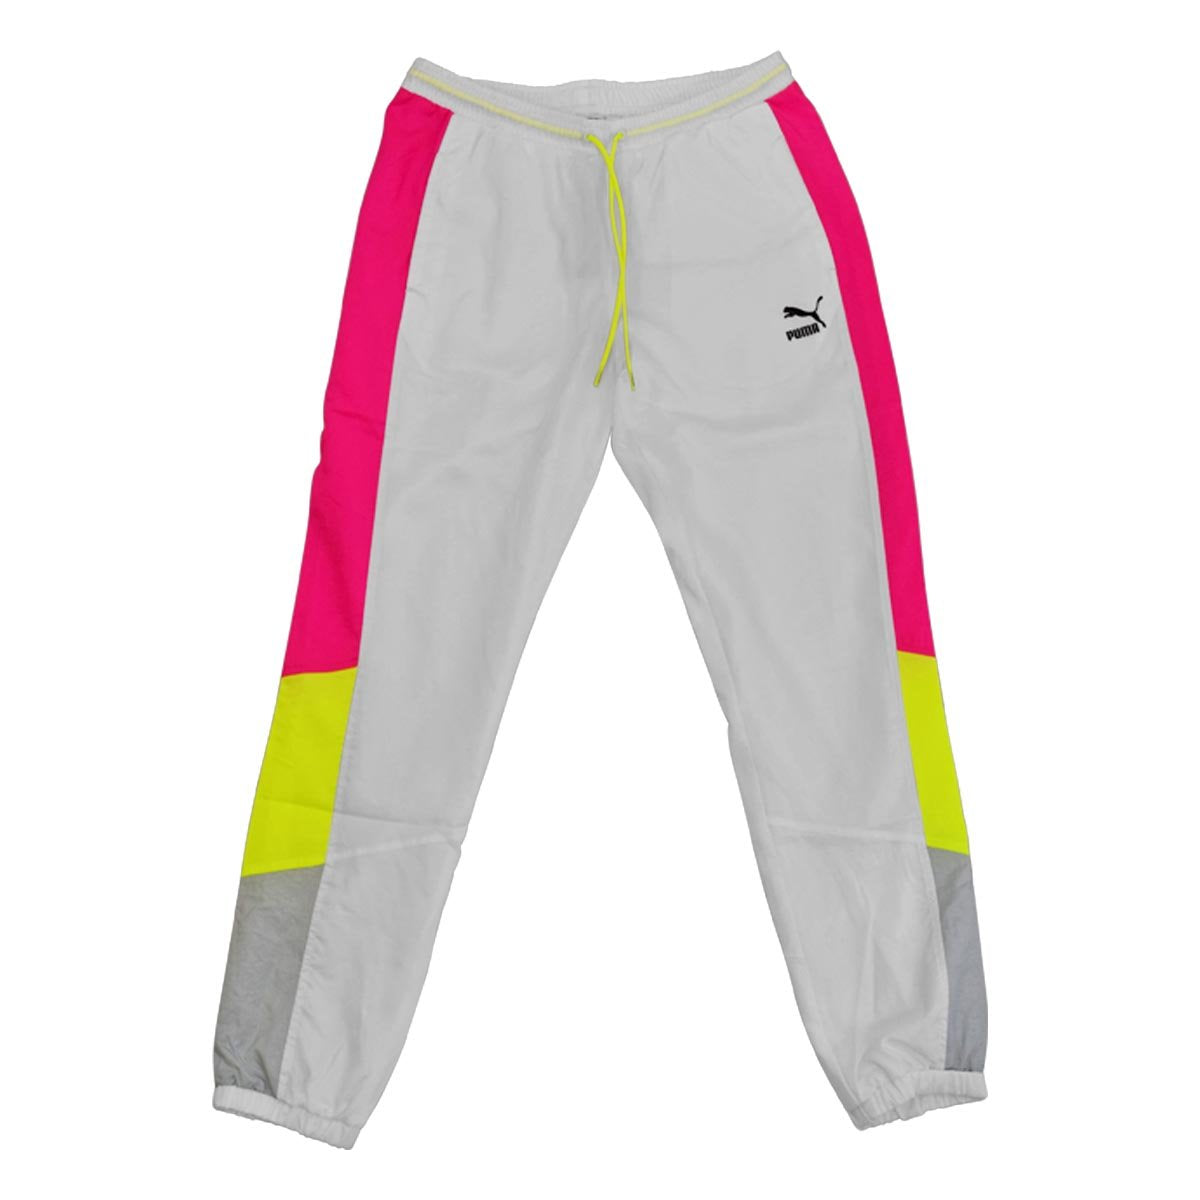 Tailored for Sport OG Women's Retro Pants